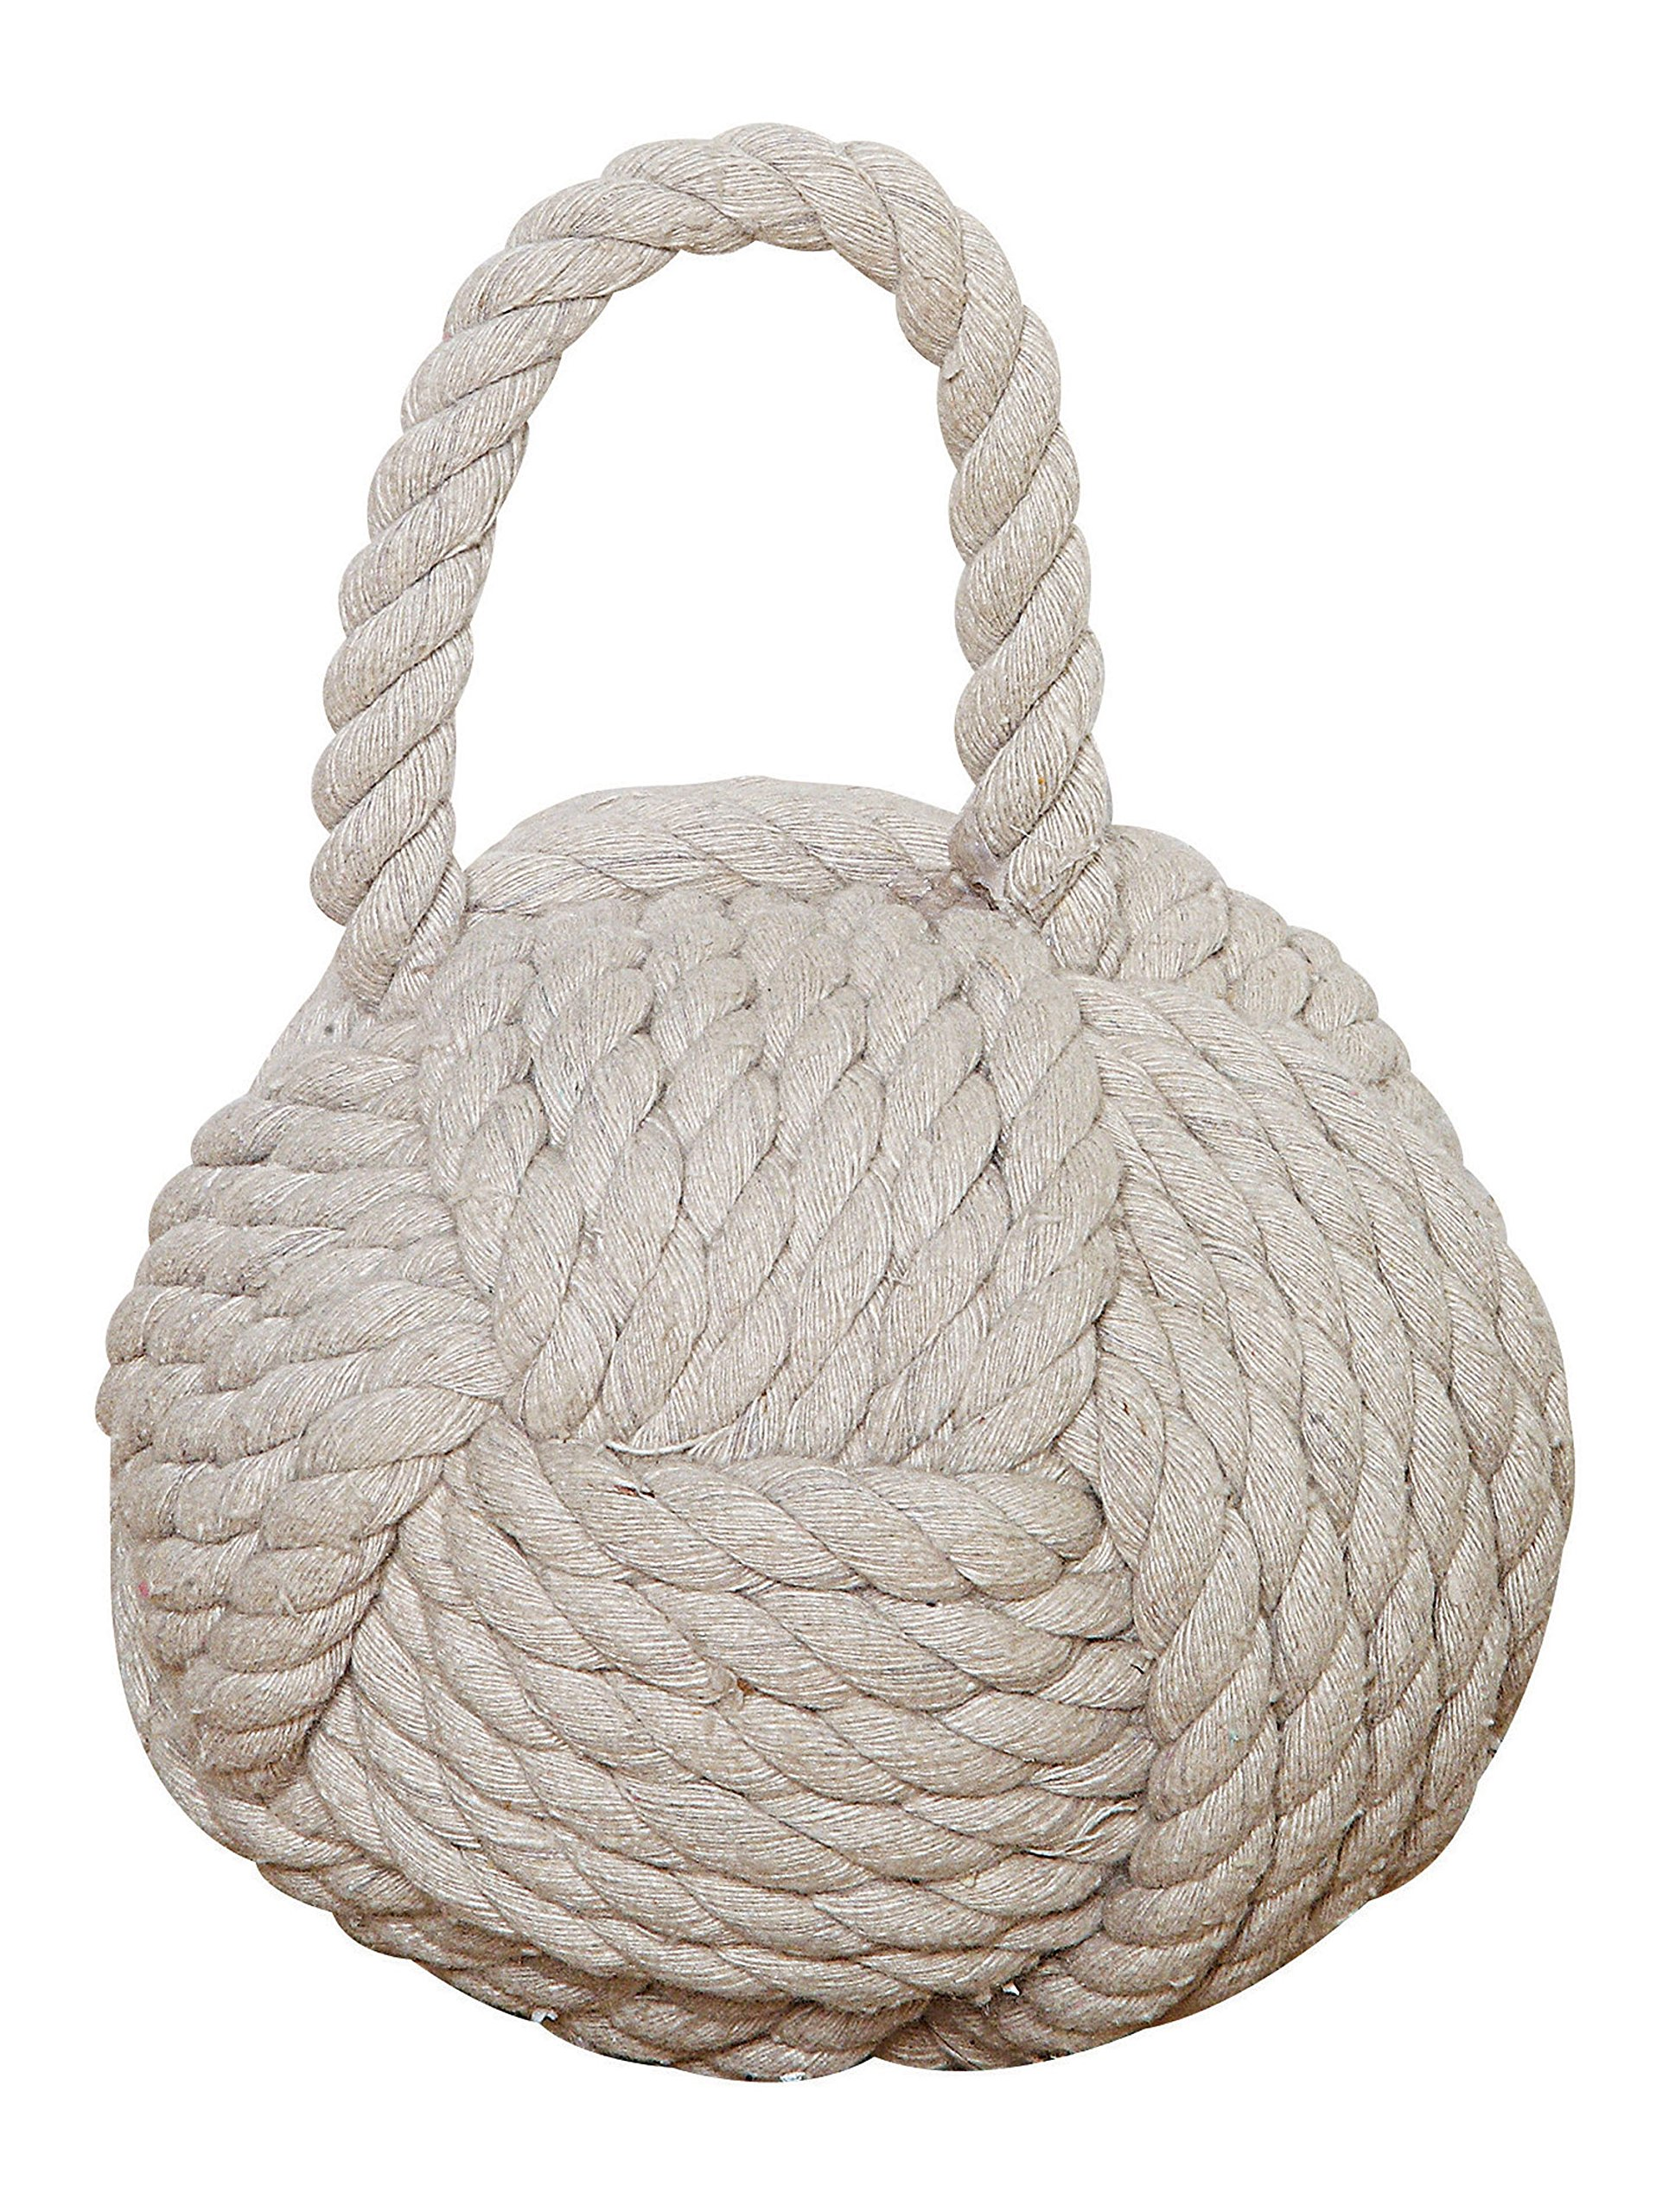 Creative Co-op DE1586 Nautical Rope Knot Door Stop, White by Creative Co-op